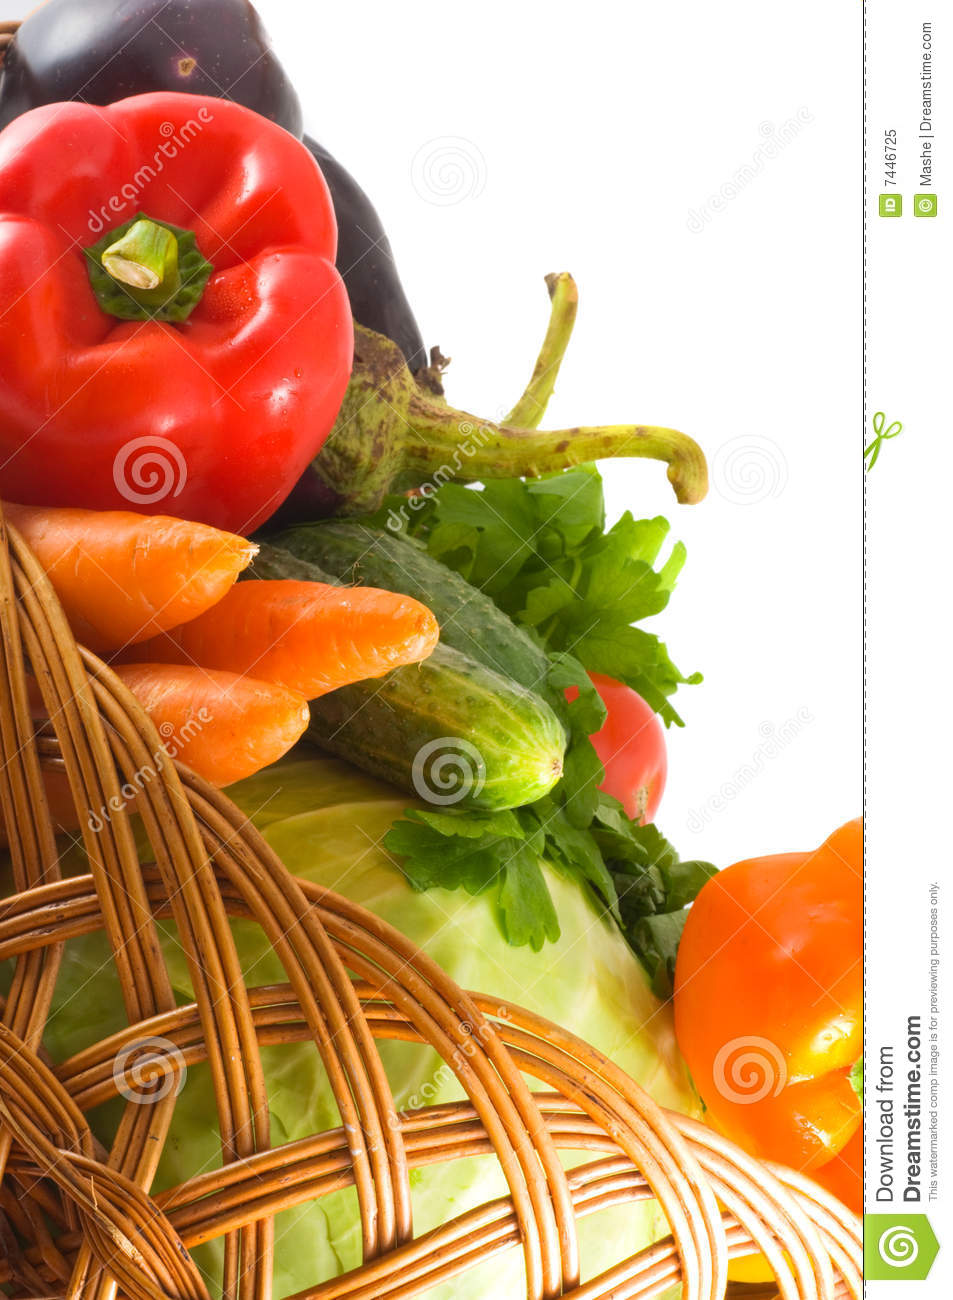 Beautiful vegetables yield royalty free stock photo for Beautiful vegetables